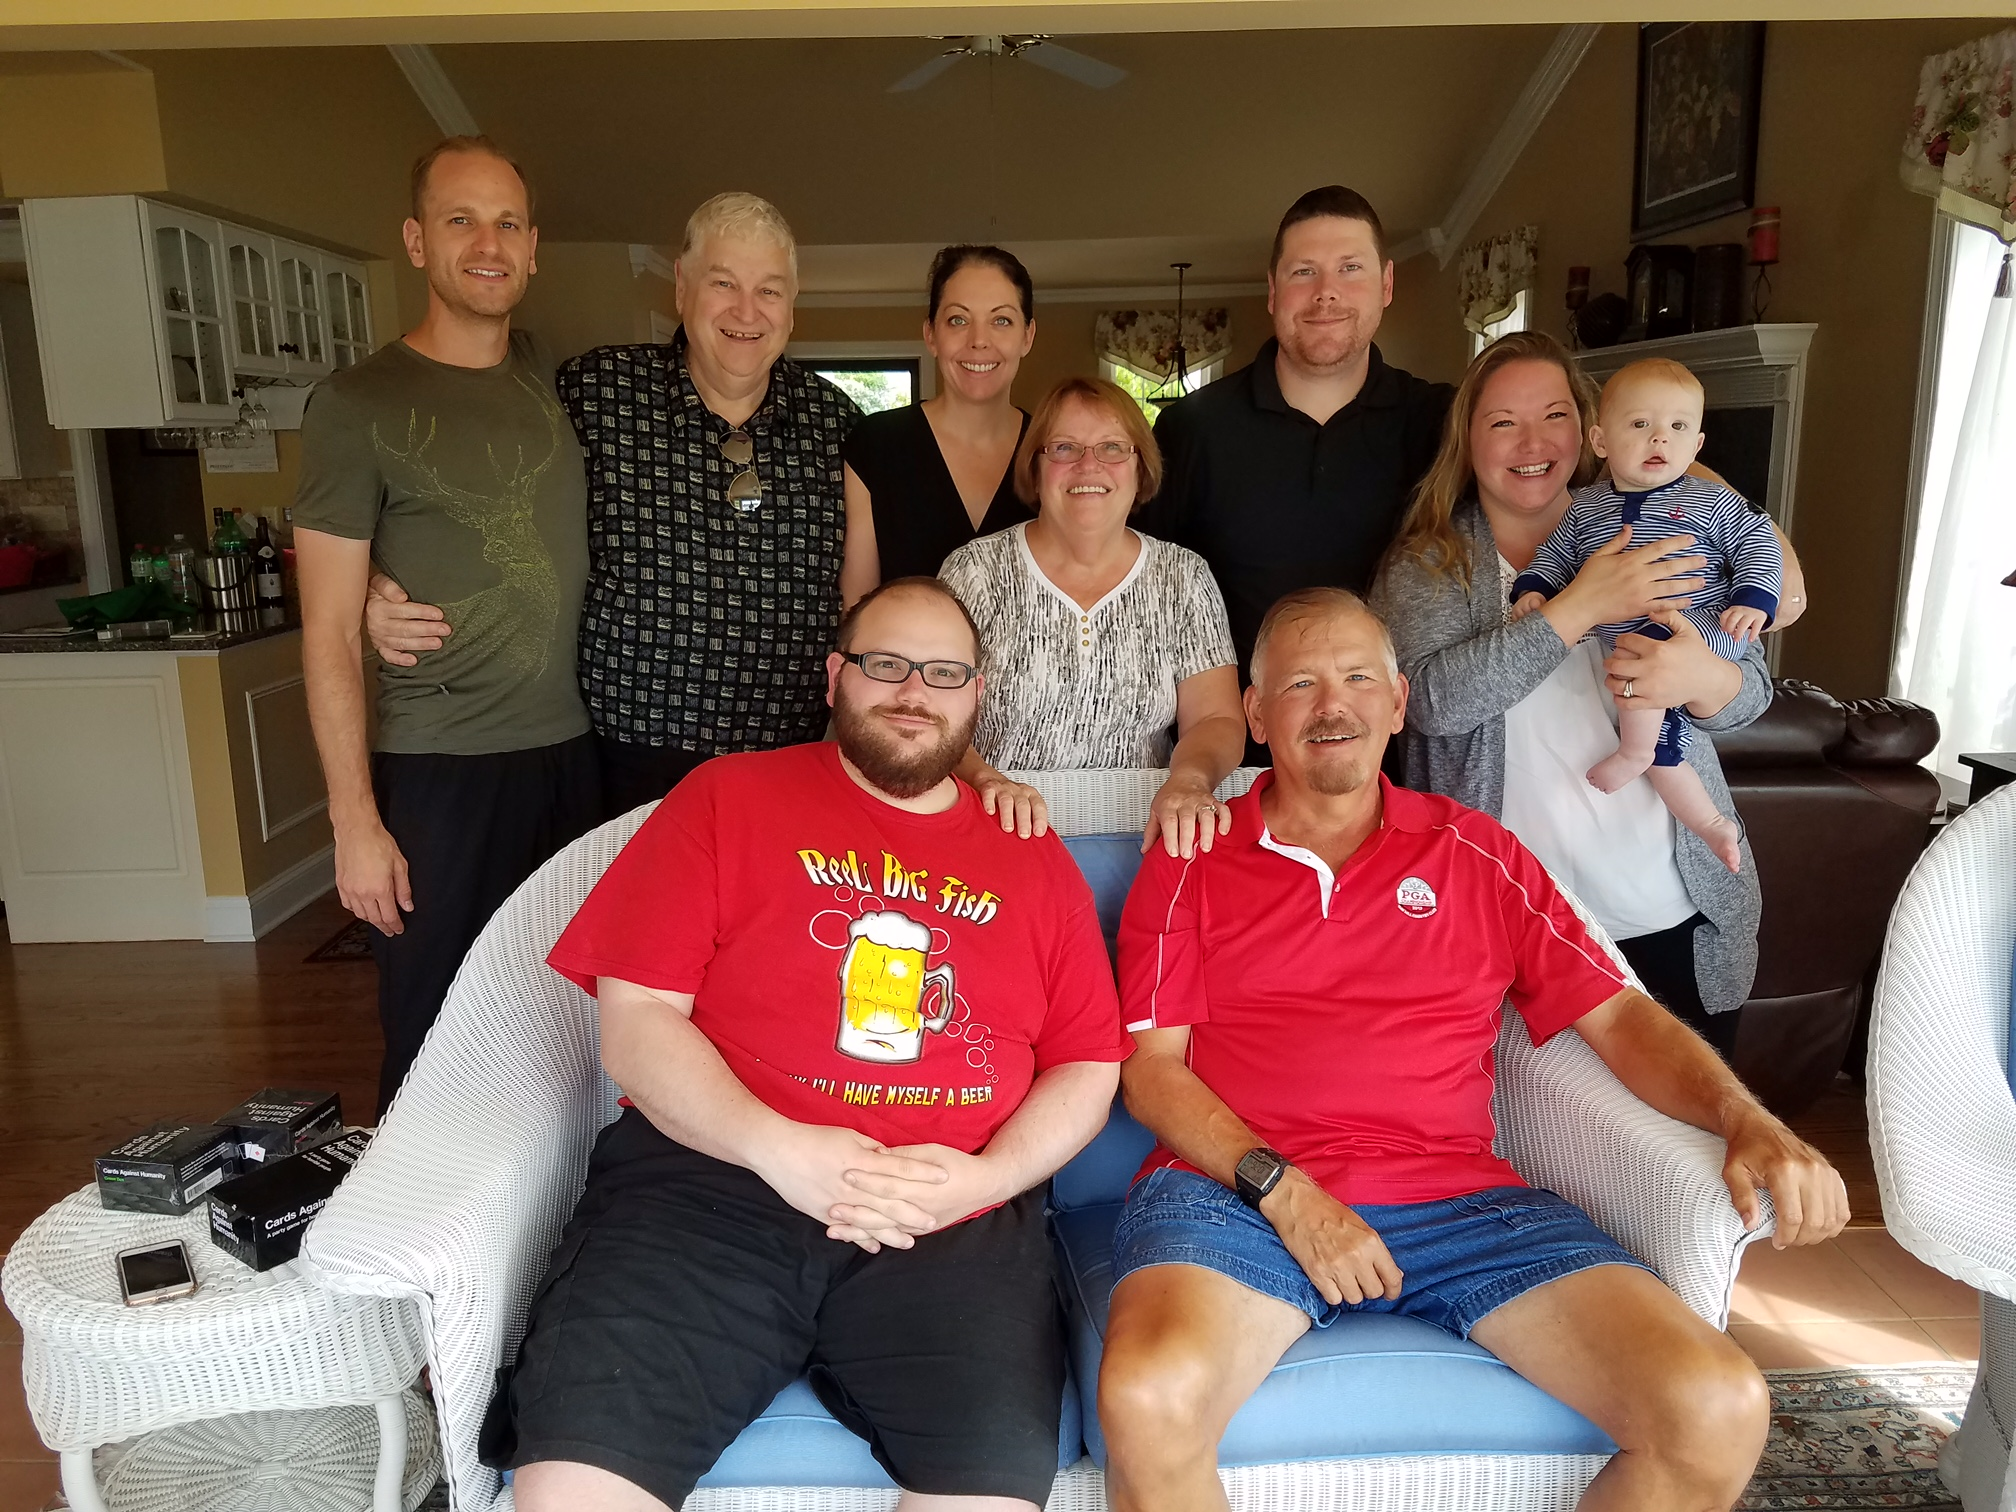 The Starnes/Neve/Argiropoulos clan in Tennessee.